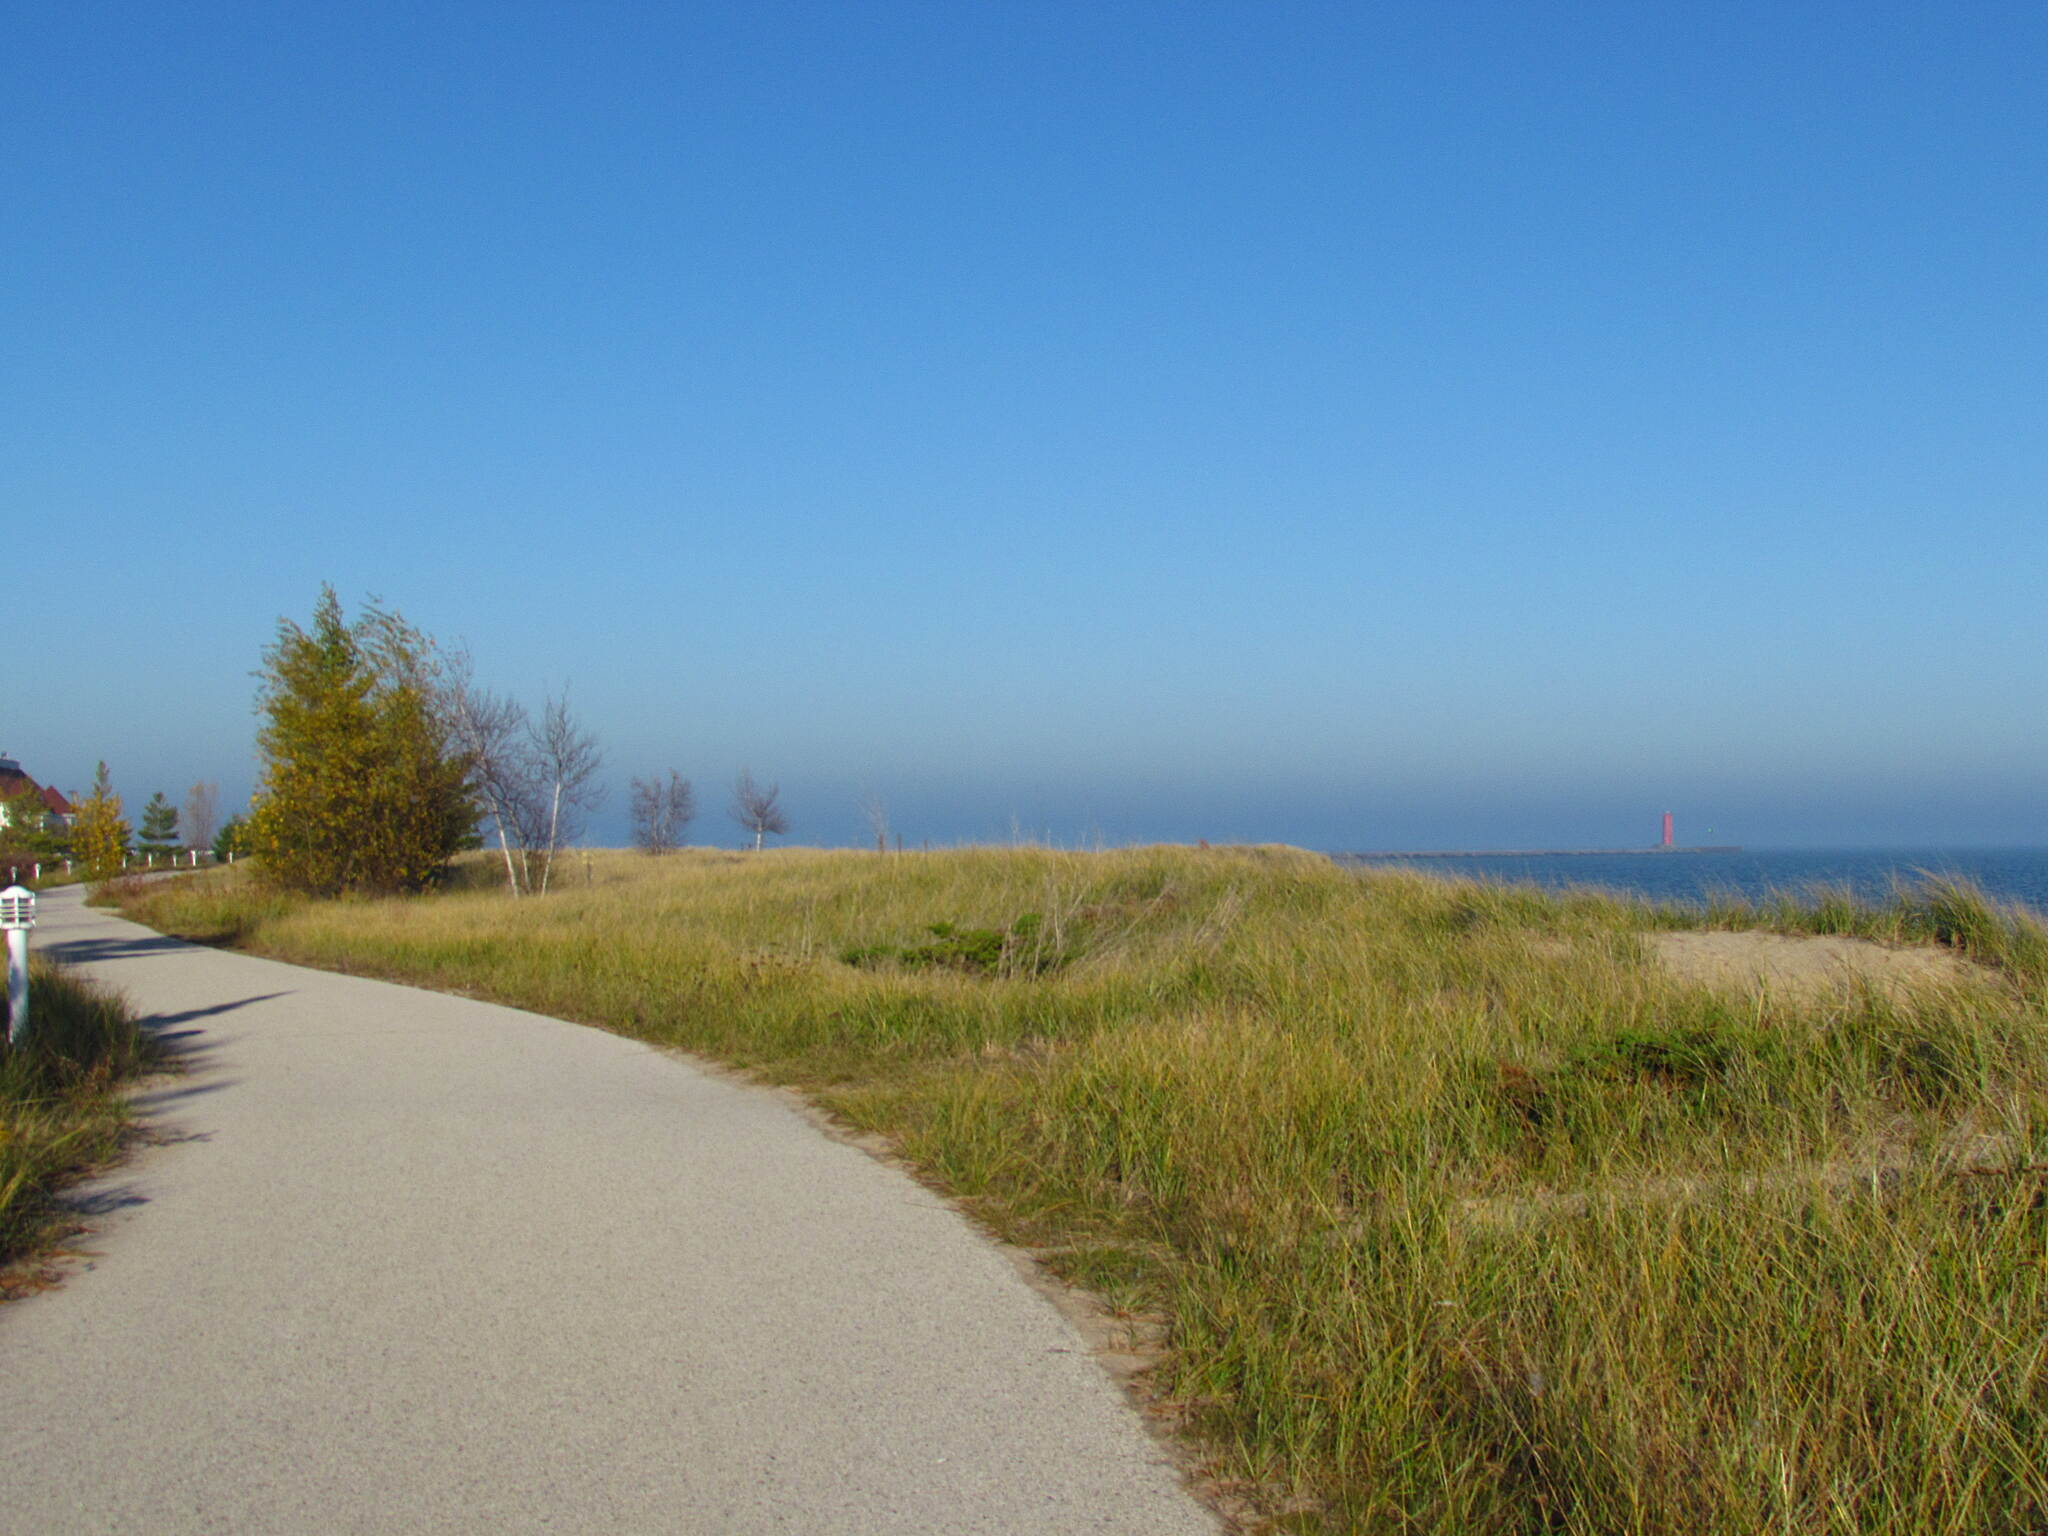 Lakefront Bike Path Lakefront trail Nice day in November.